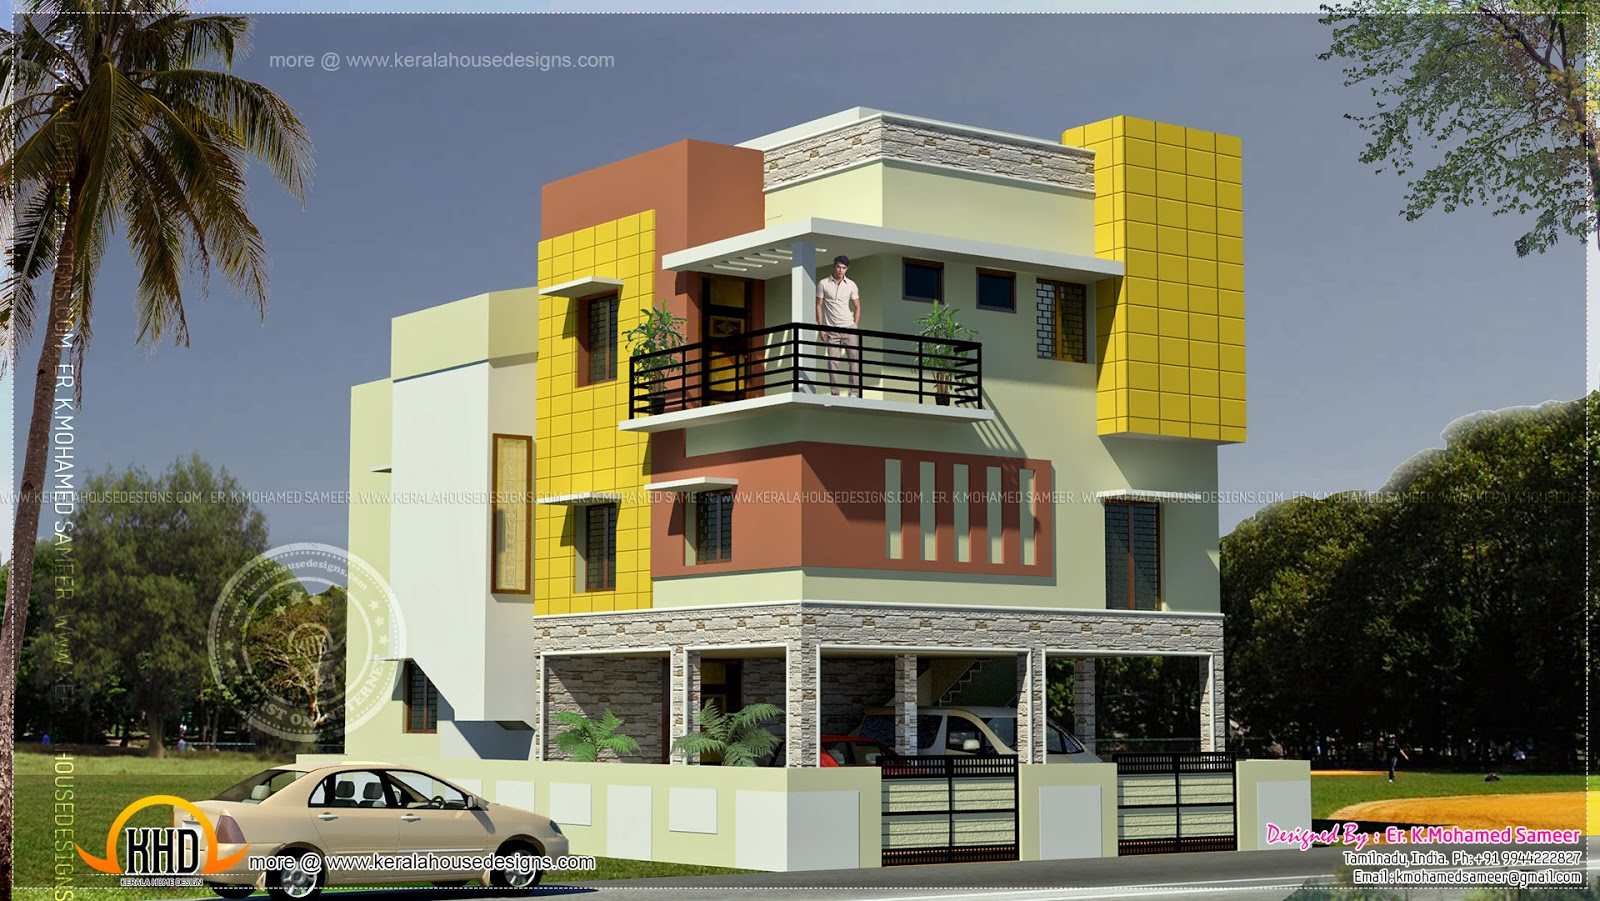 Duplex house in tamilnadu kerala home design and floor plans for Tamilnadu house models